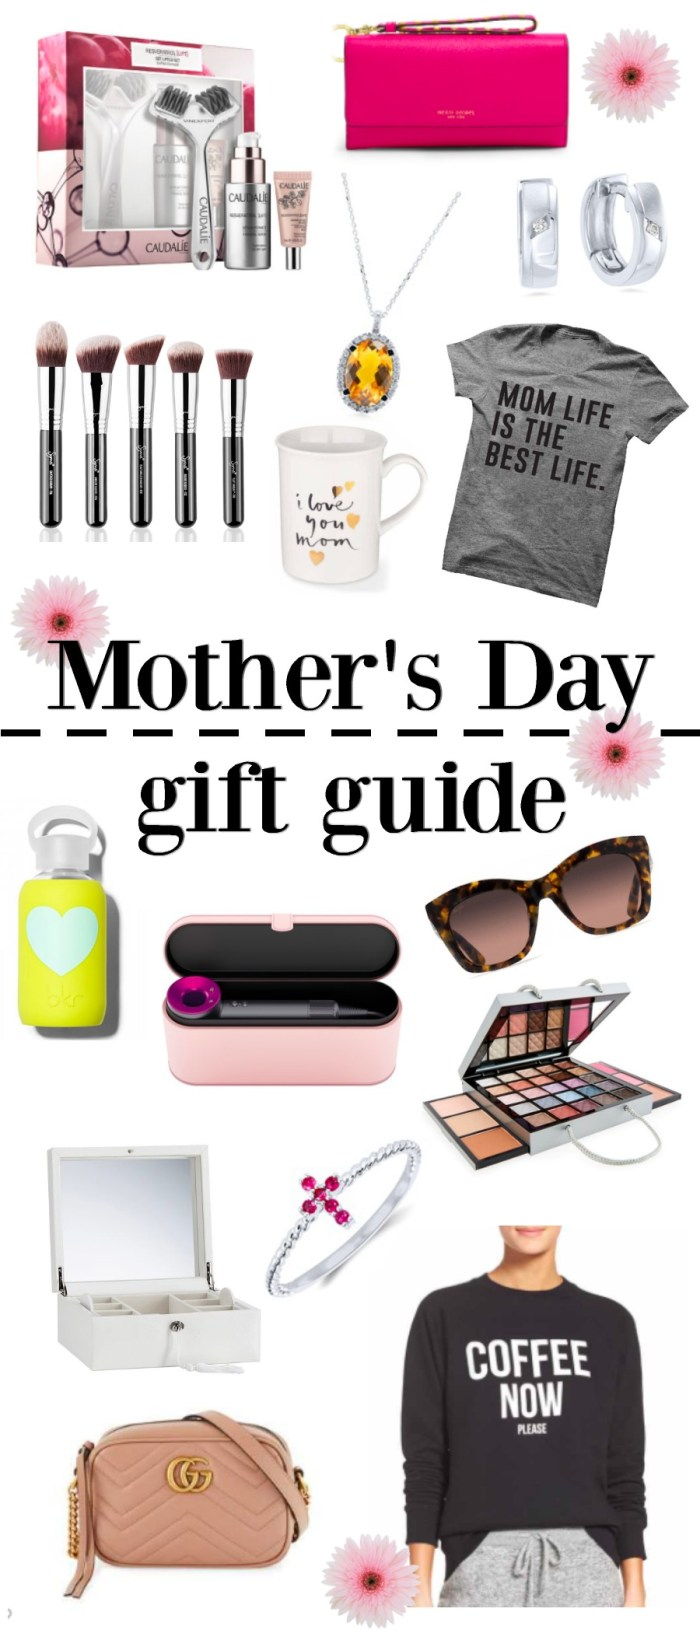 Mother's Day gift idea | Gift guide for her | Gift ideas for mom | Gift ideas for her | Uptown with Elly Brown